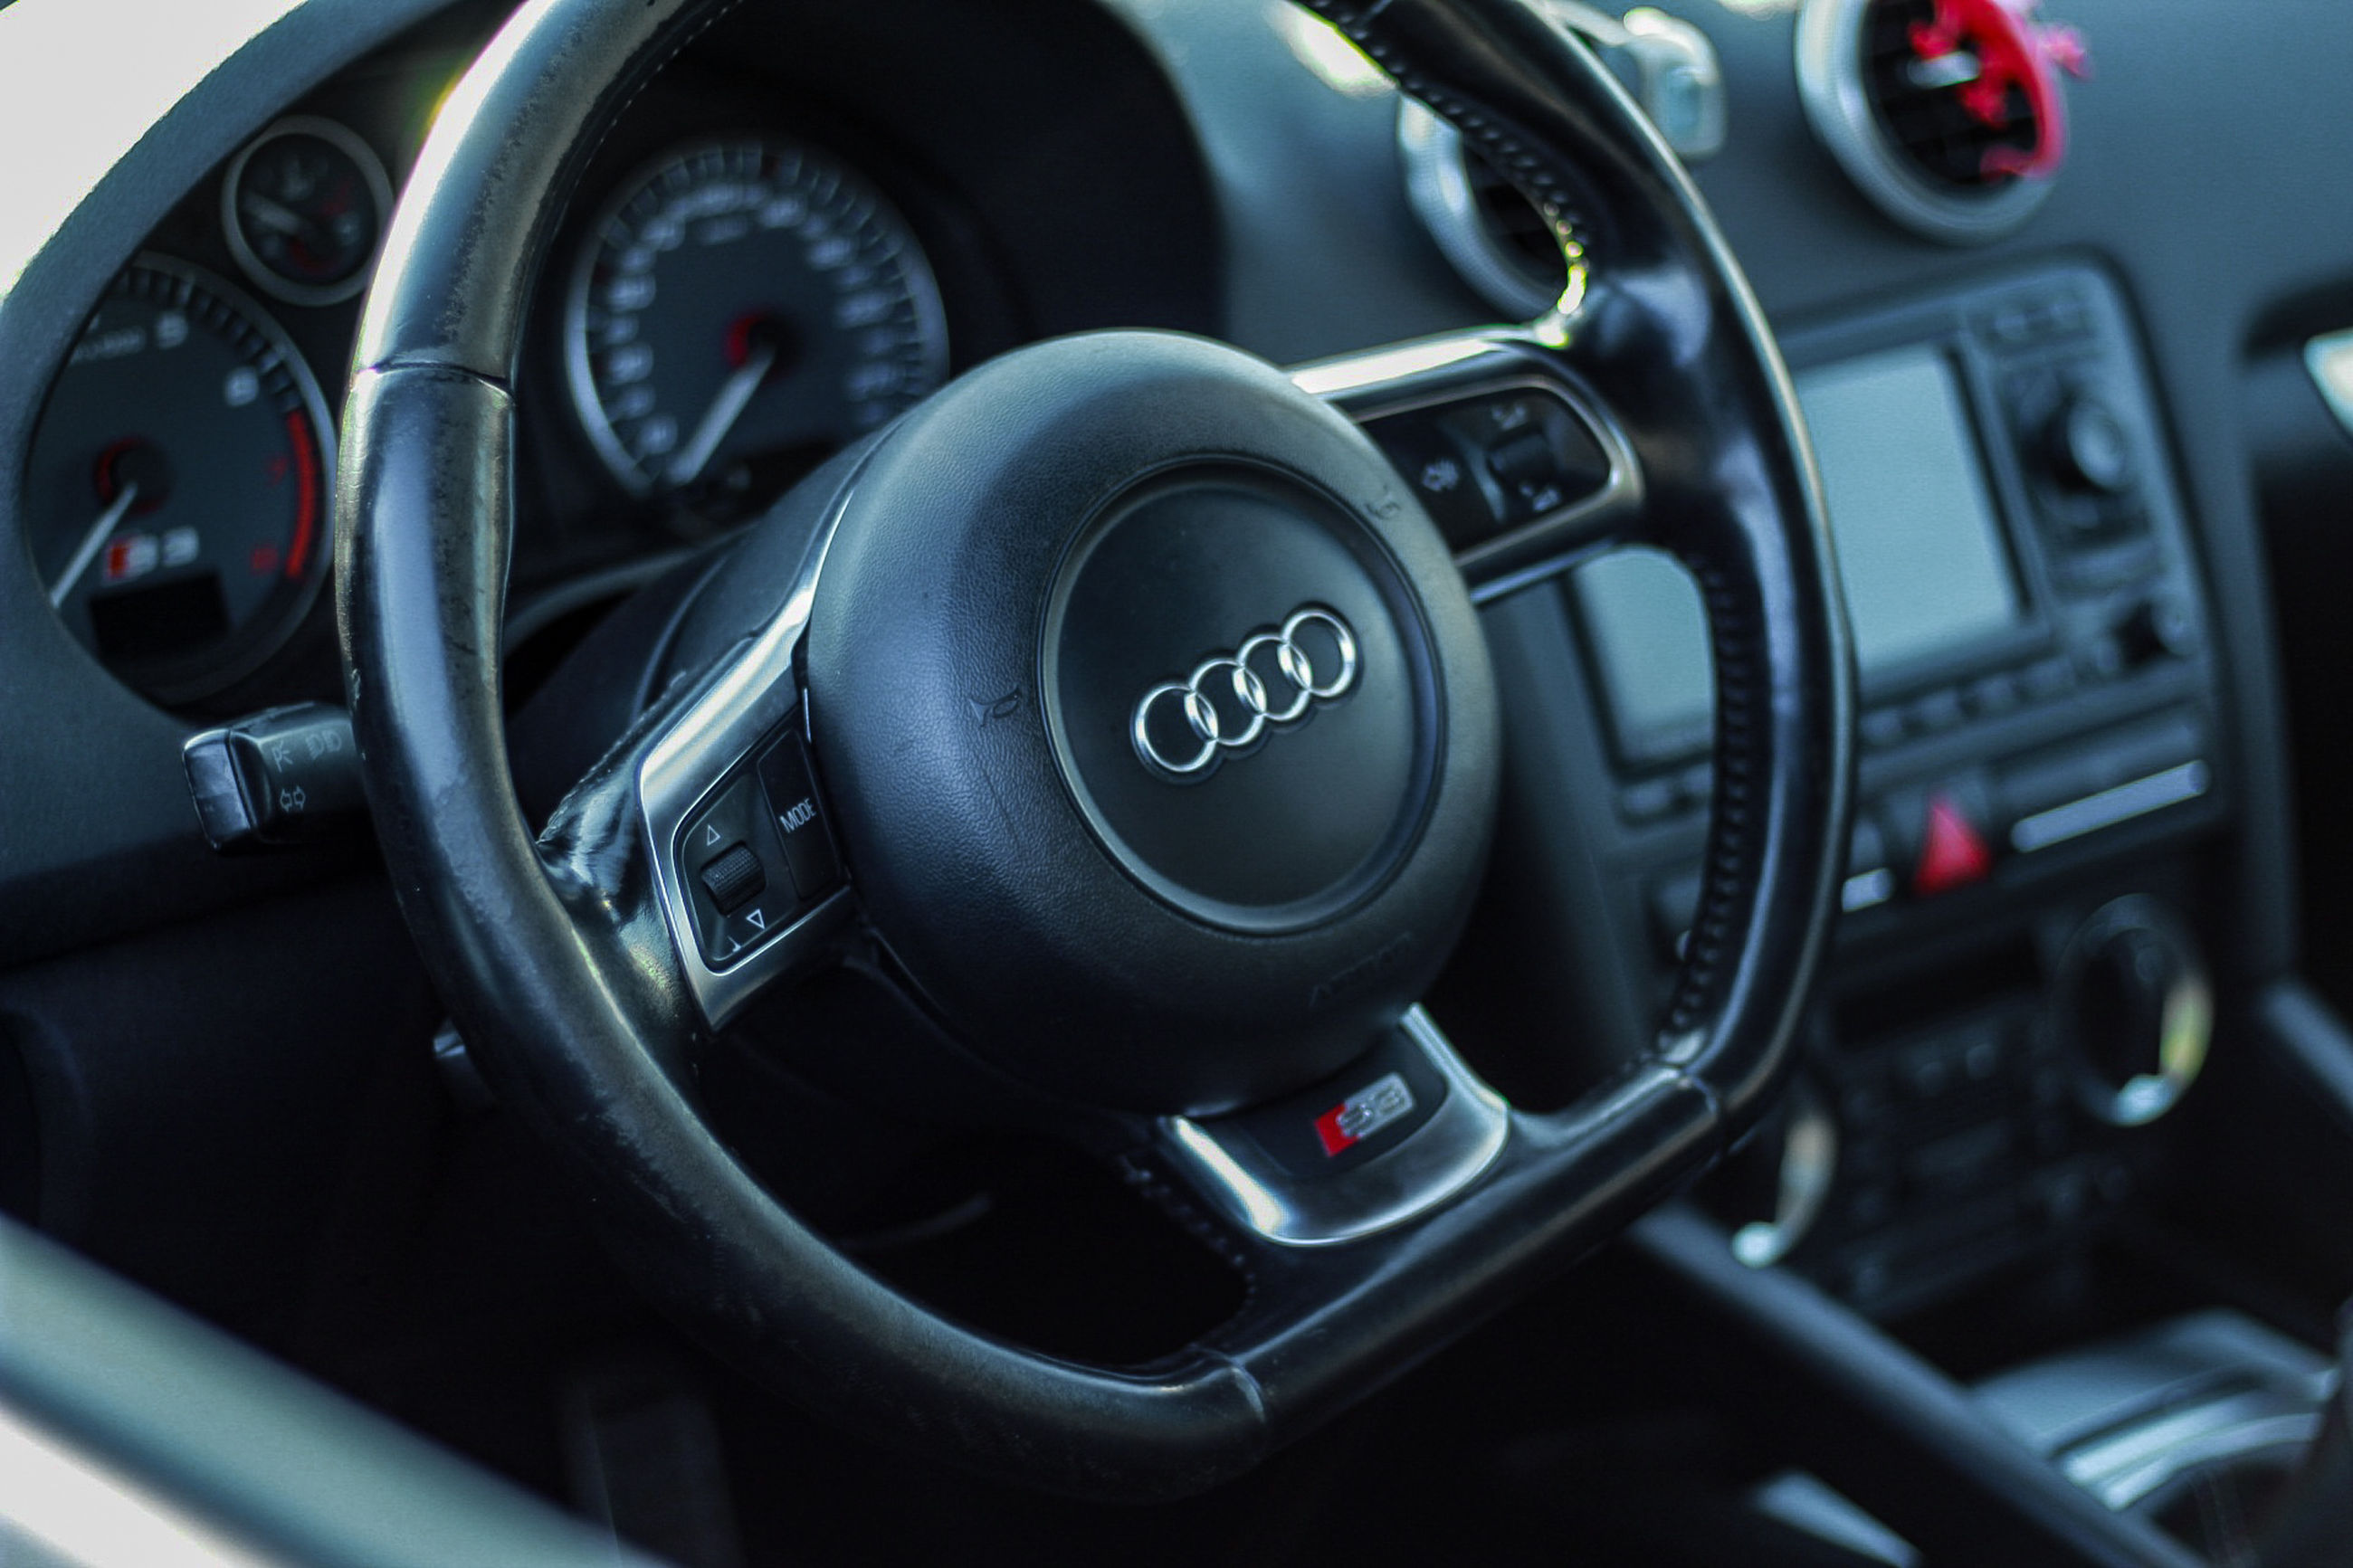 mode of transportation, vehicle interior, transportation, motor vehicle, car, car interior, number, control panel, land vehicle, control, gearshift, dashboard, close-up, steering wheel, technology, speedometer, speed, no people, indoors, vehicle part, push button, luxury